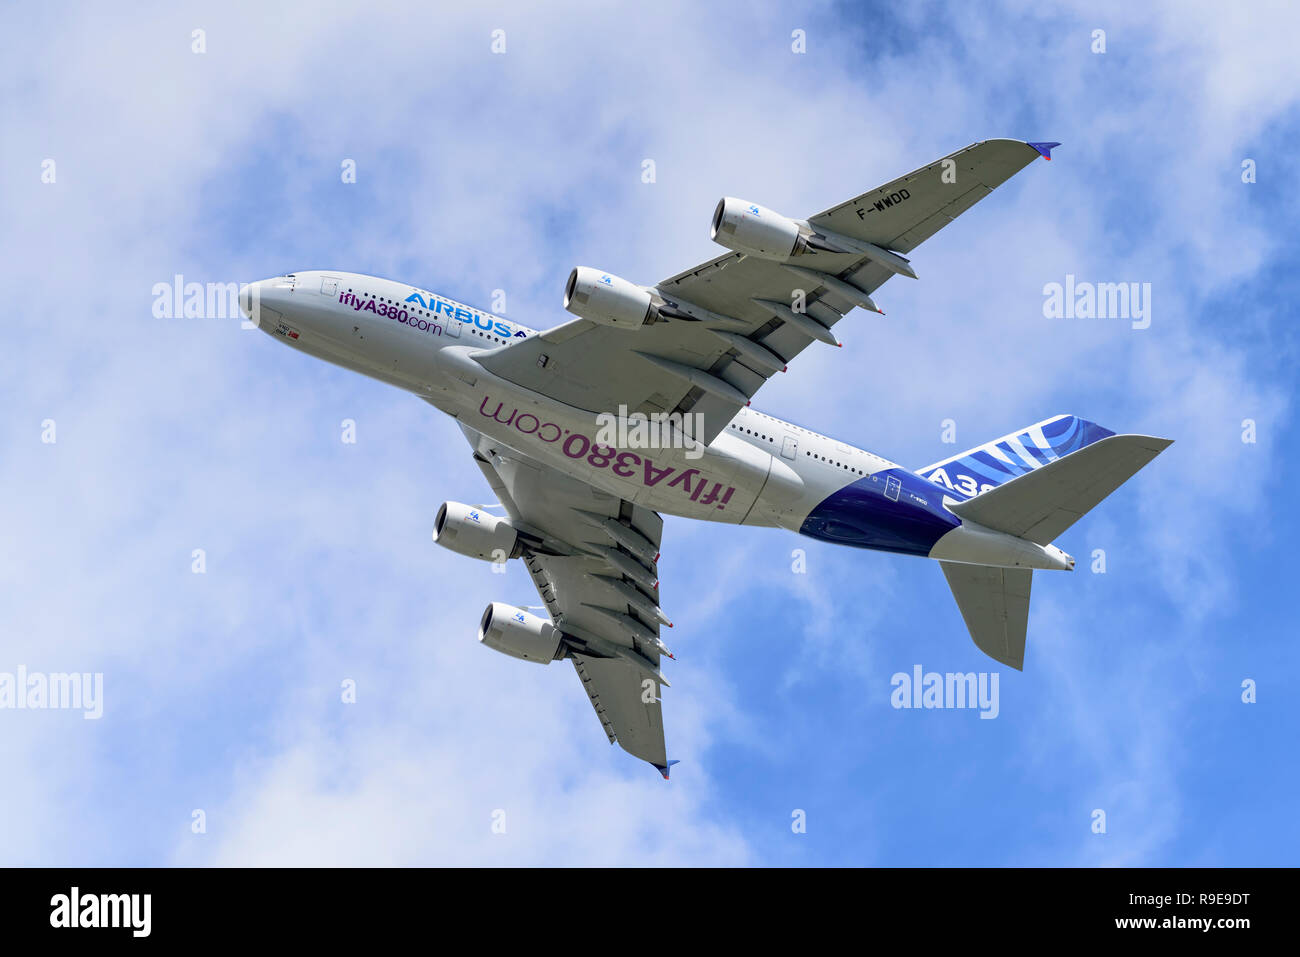 Airbus A380 passenger airliner shows its underside and flight control surfaces during a clean pass from right to left. - Stock Image